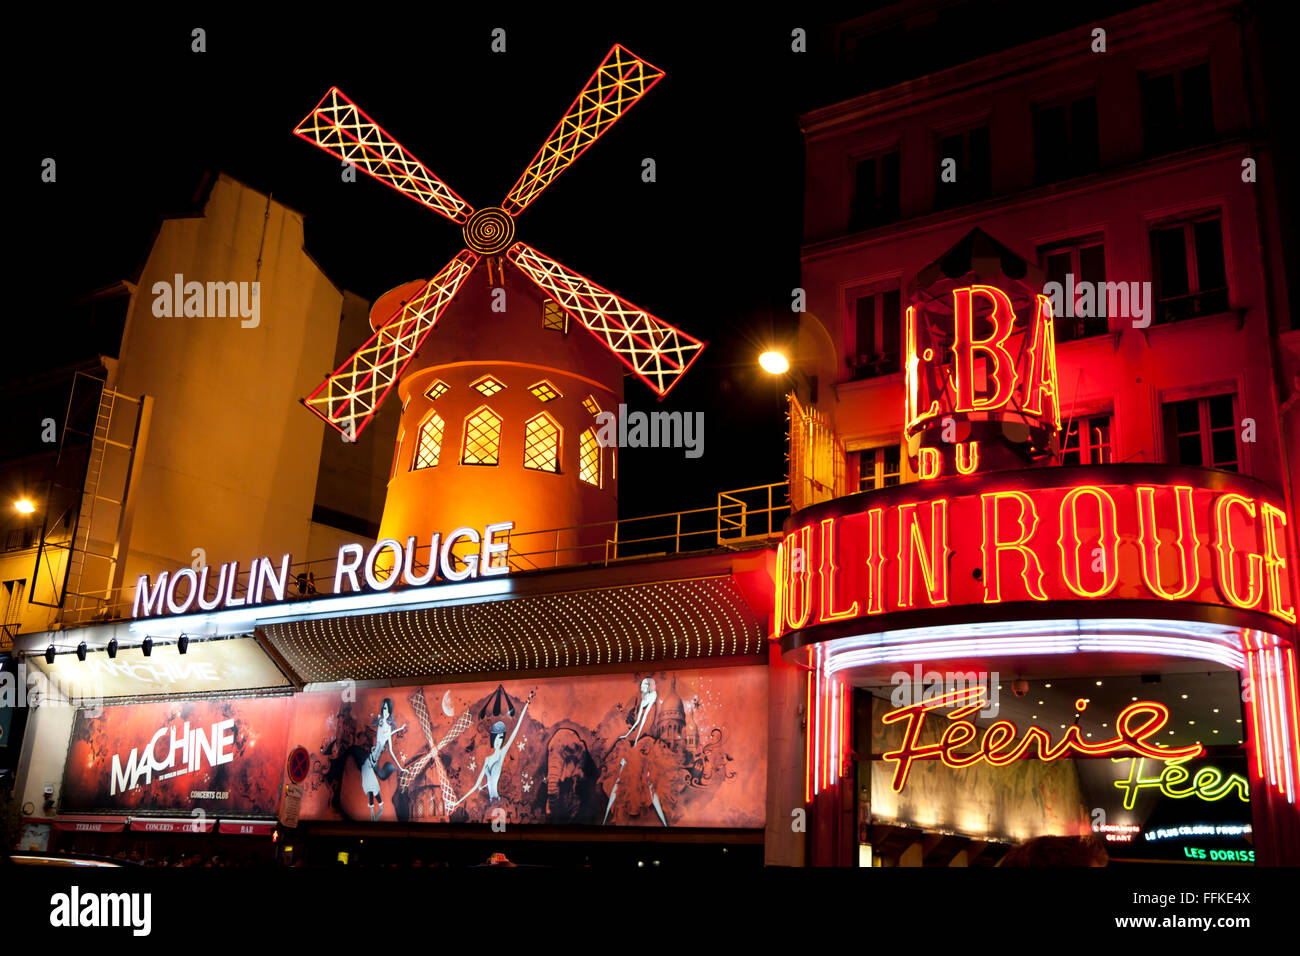 Moulin Rouge Montmartre Paris France in the evening - Stock Image